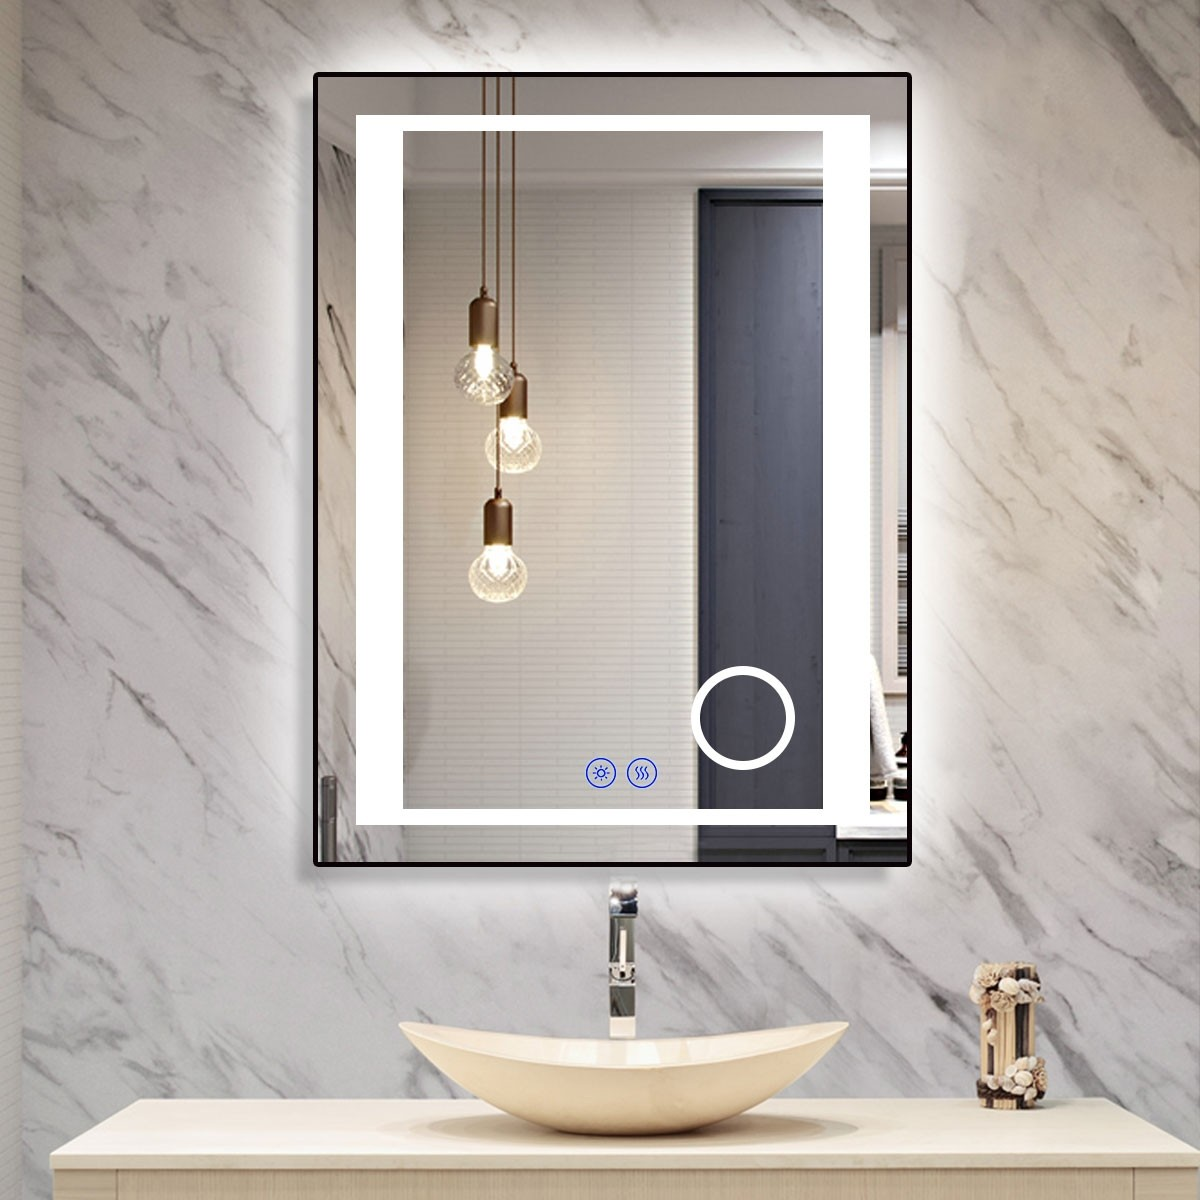 DECORAPORT 24 x 32 Inch LED Bathroom Mirror/Dress Mirror with Touch Button, Magnifier, Anti Fog, Dimmable, Vertical & Horizontal Mount (KT15-2432)